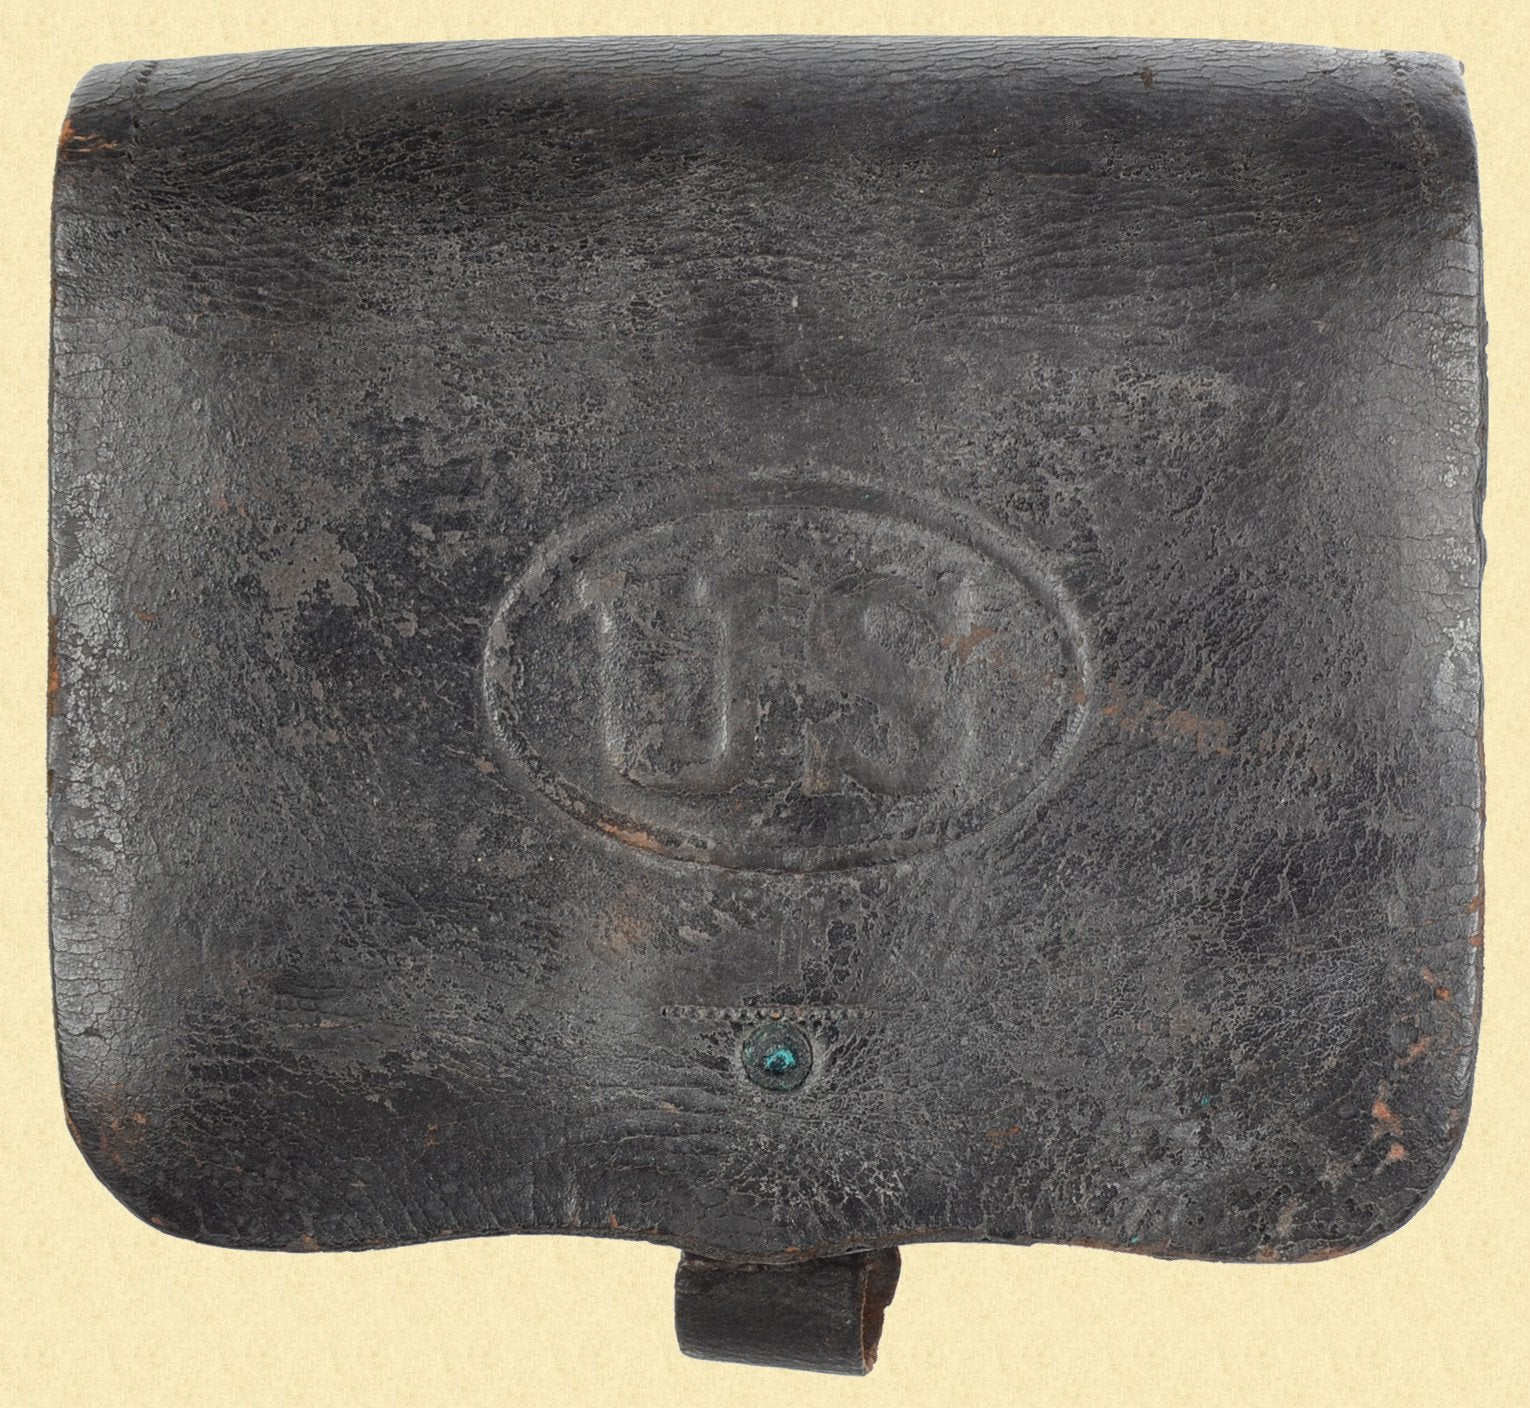 U.S. M1864 CARTRIDGE BOX